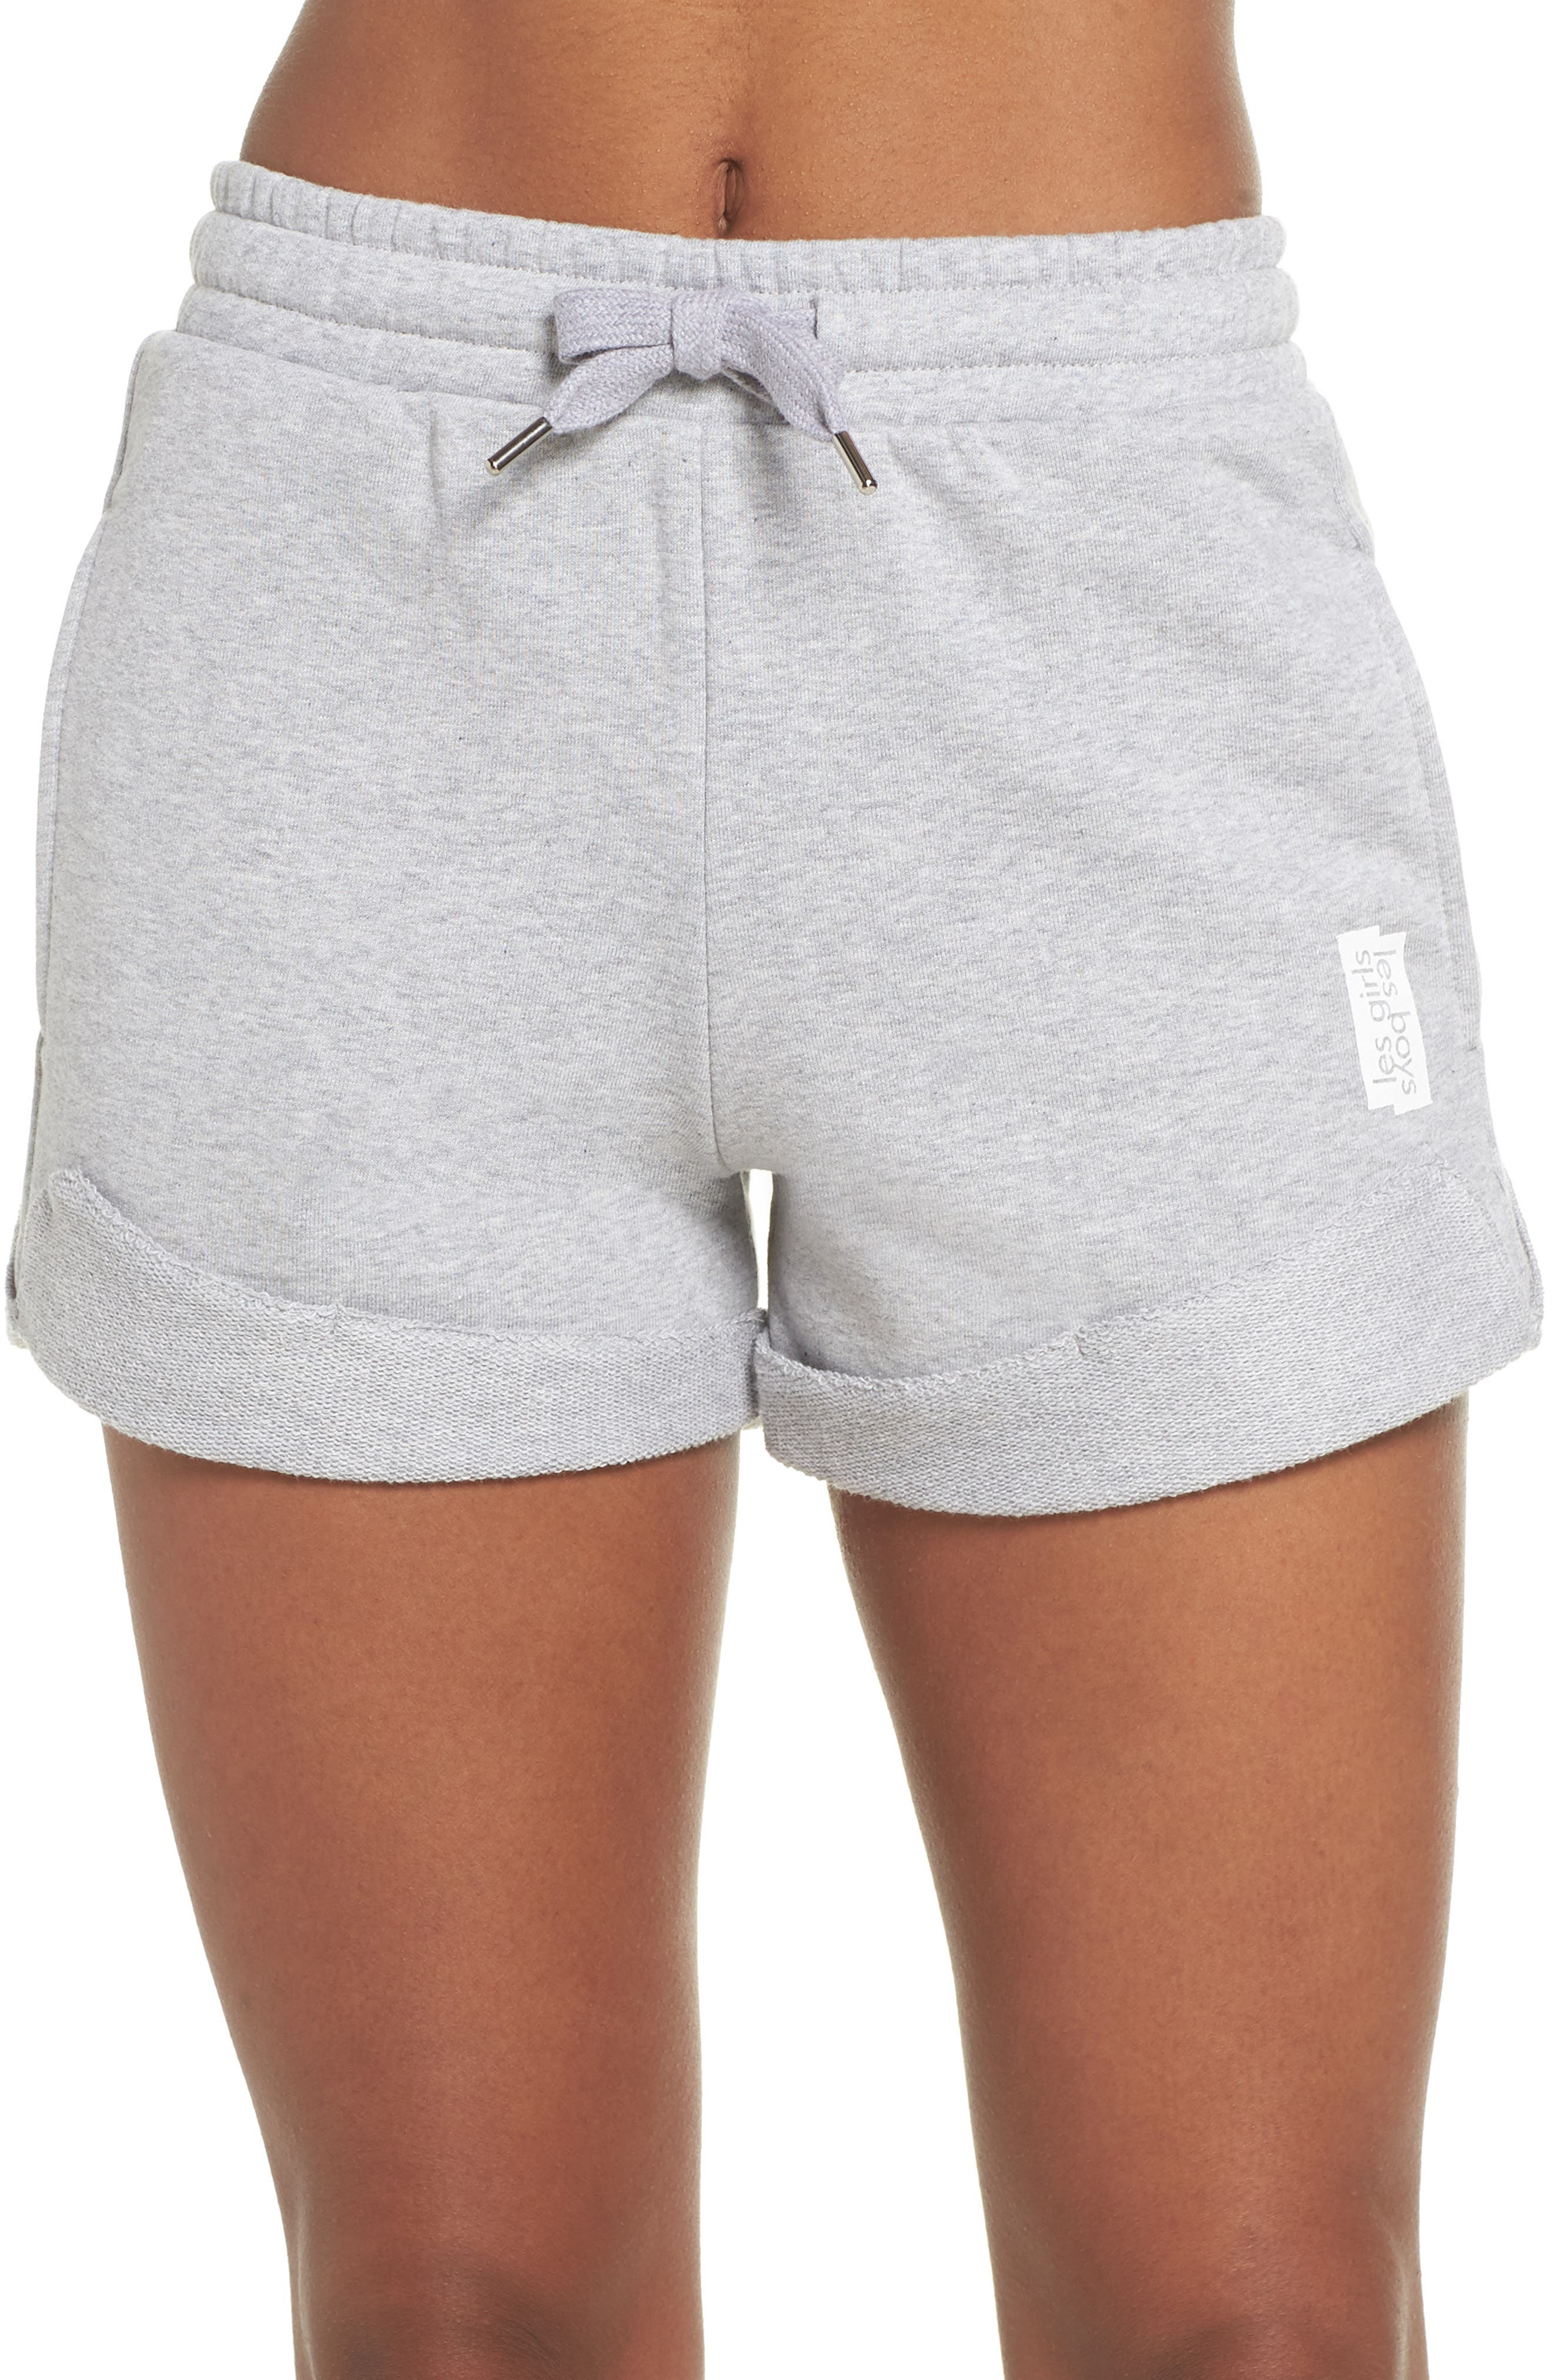 French Terry High Waist Shorts,                             Main thumbnail 1, color,                             Light Grey Marl